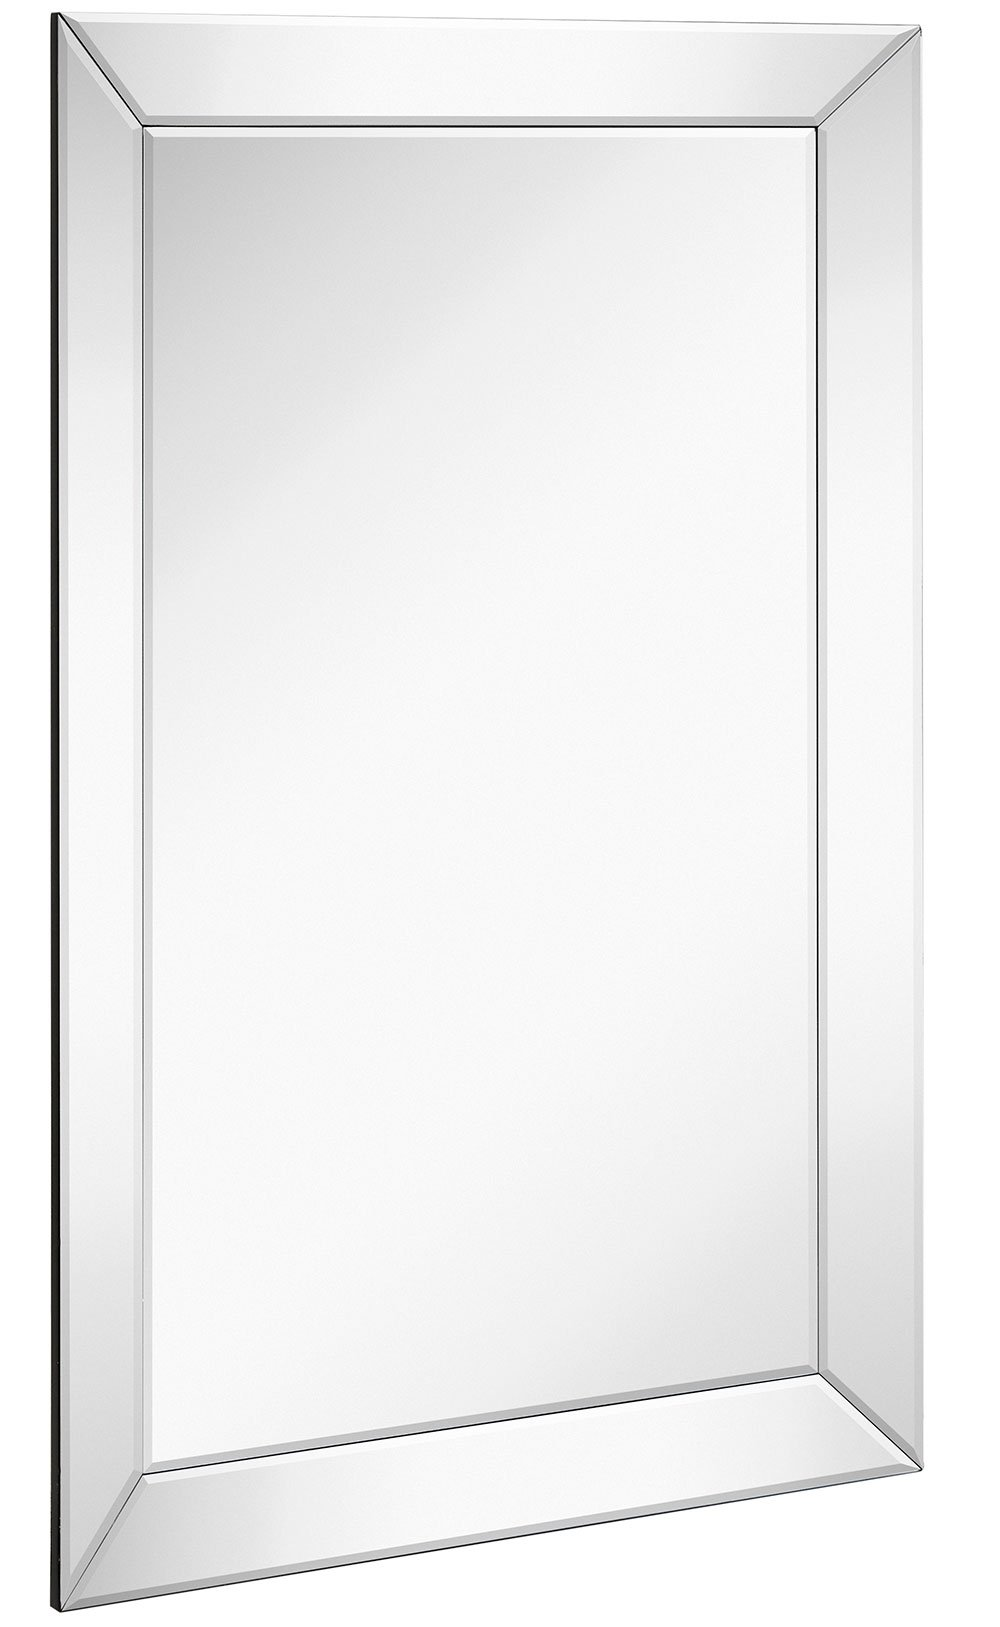 Large Framed Wall Mirror with Angled Beveled Mirror Frame | Premium Silver Backed Glass Panel Vanity, Bedroom, or Bathroom | Luxury Mirrored Rectangle Hangs Horizontal or Vertical (24'' x 36'')